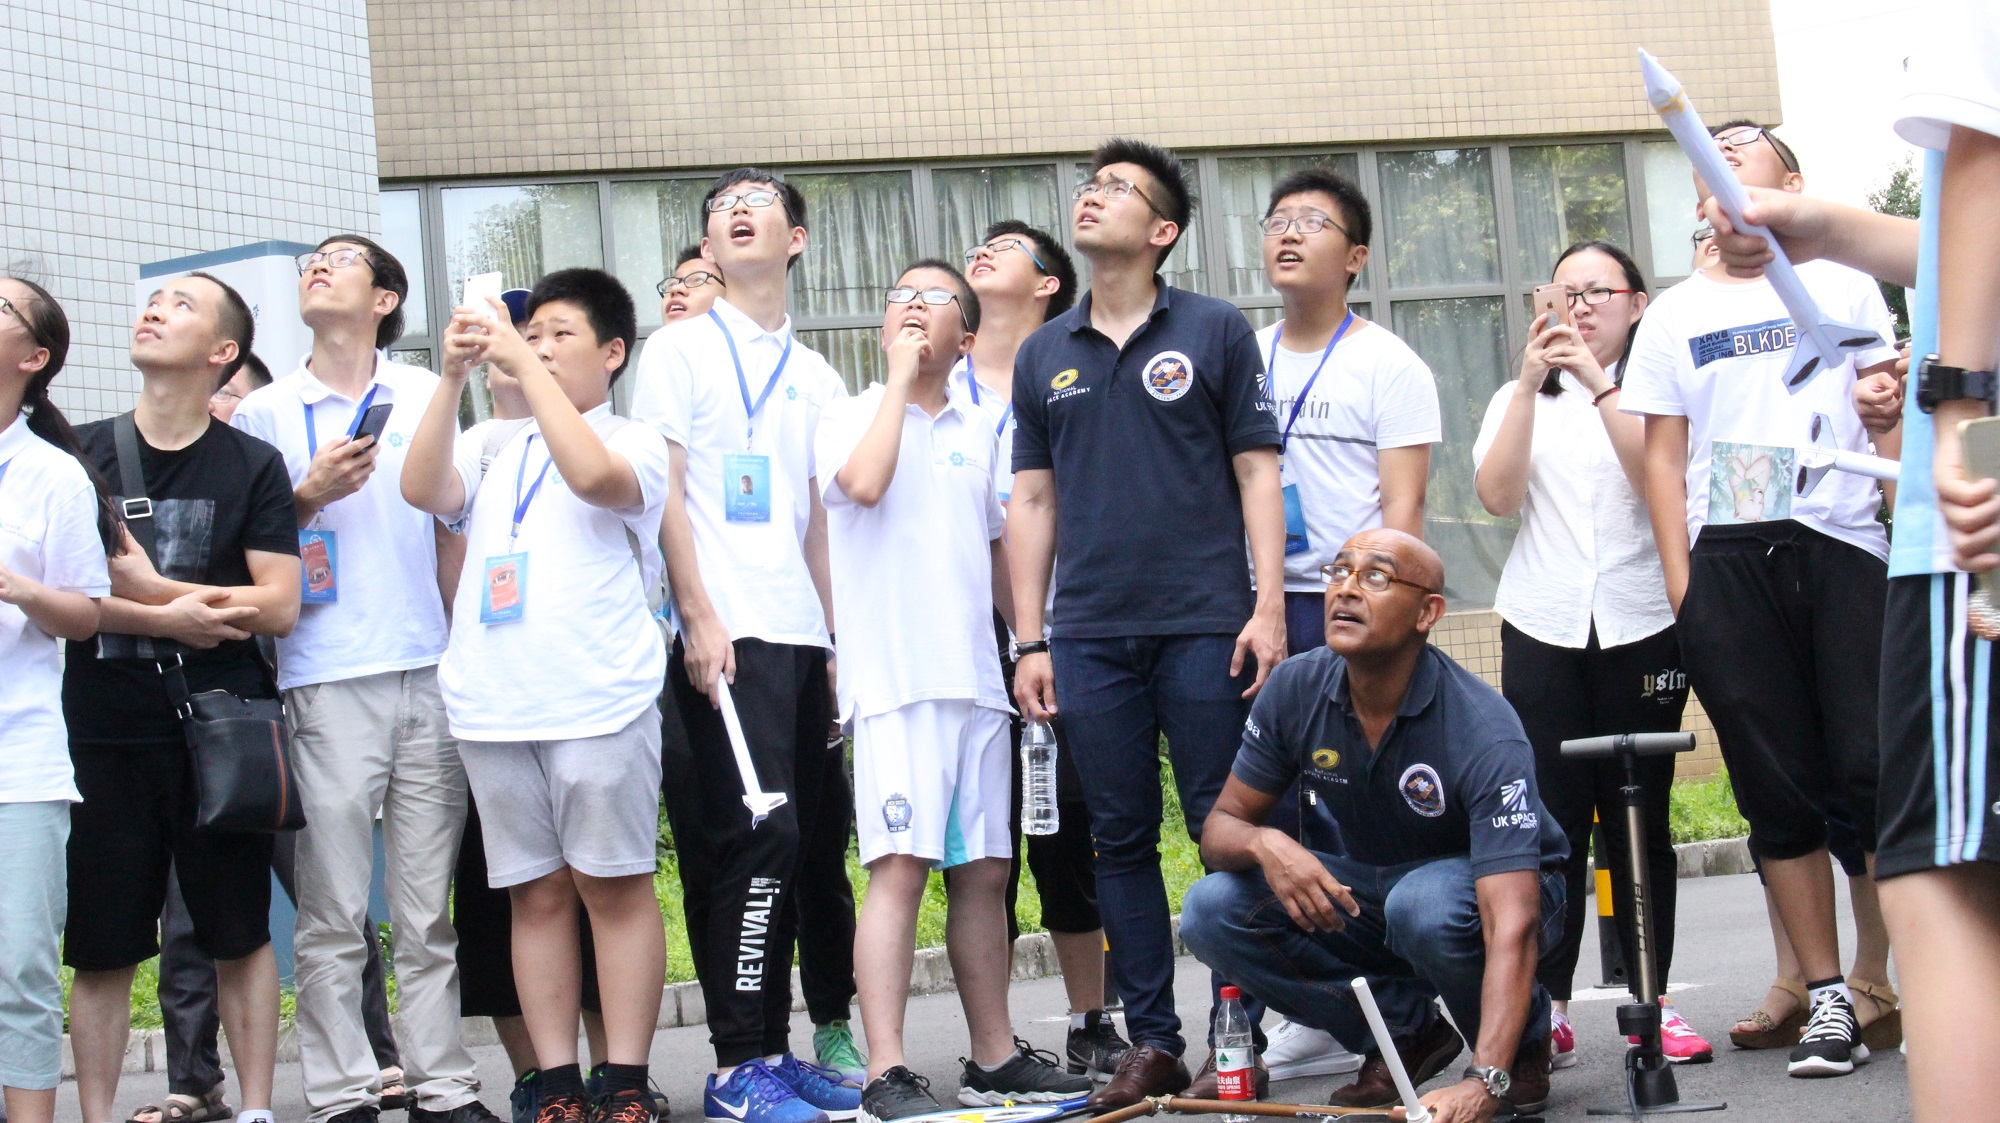 Beijing Space Summer School July - Watching rockets